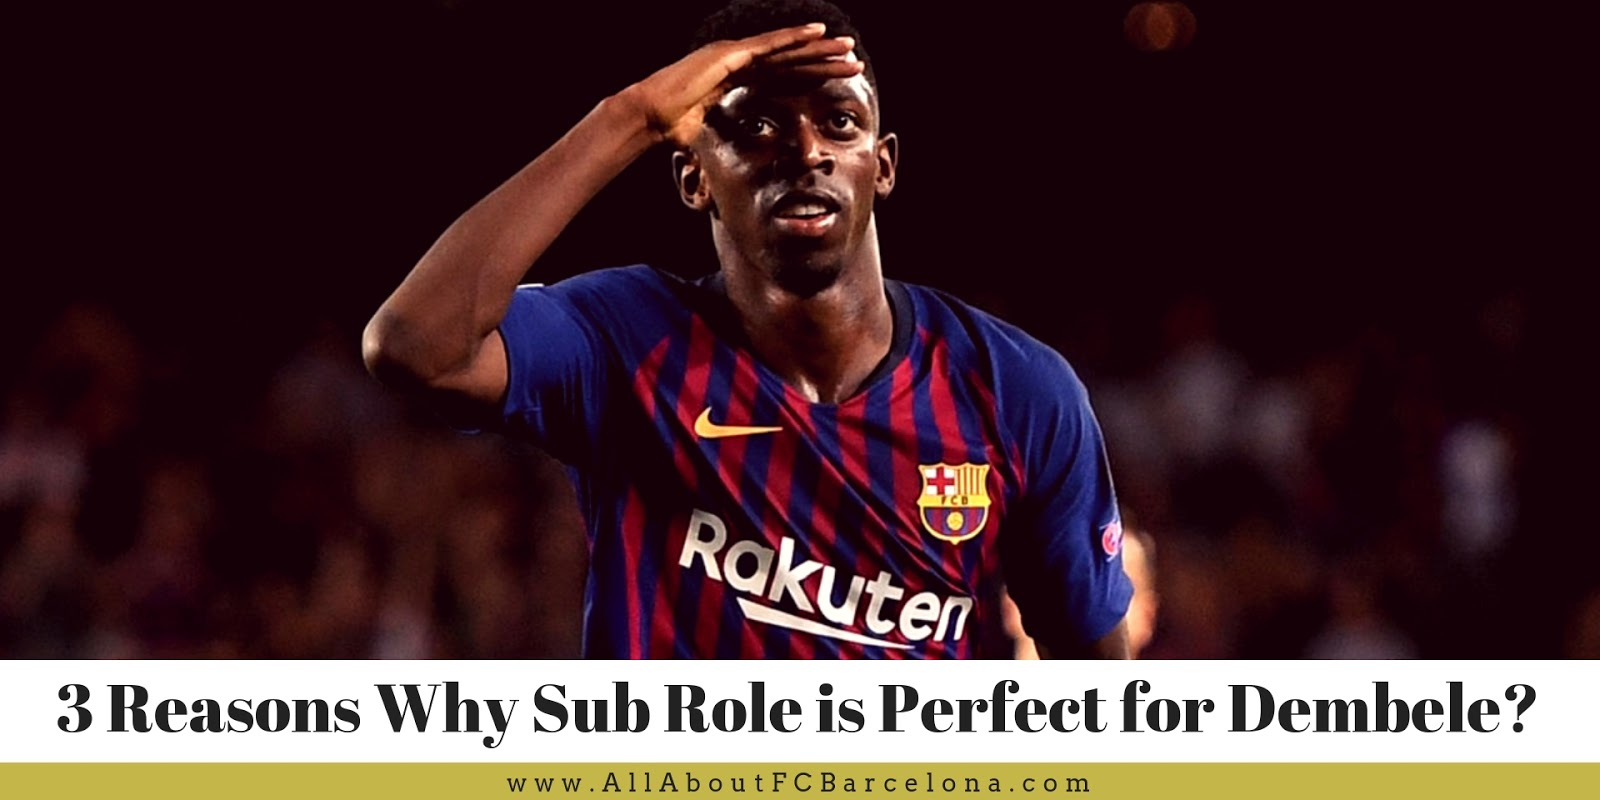 3 Simple Reasons Why Sub Role is Perfect for Dembele #Barca #FCBarcelona